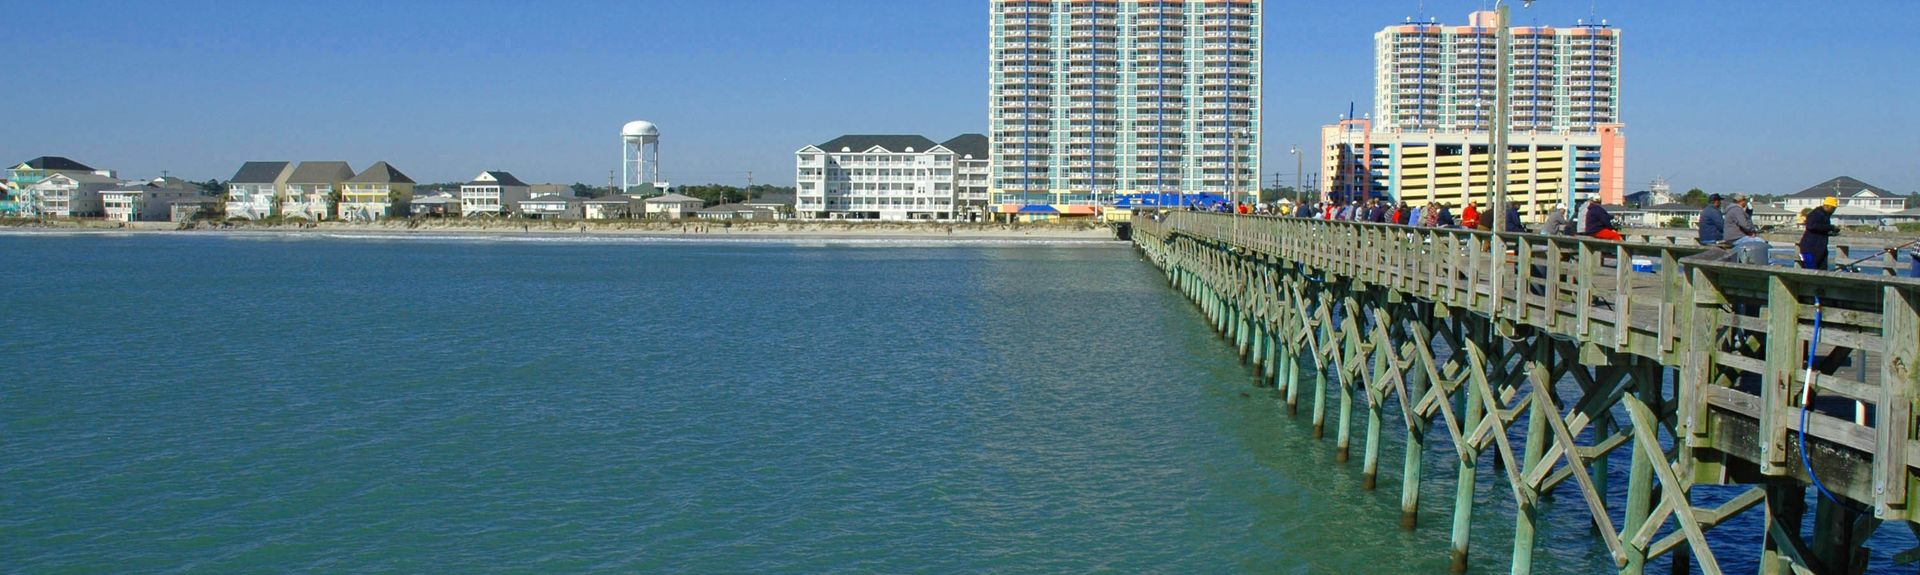 Cherry Grove Beach, North Myrtle Beach, SC, USA